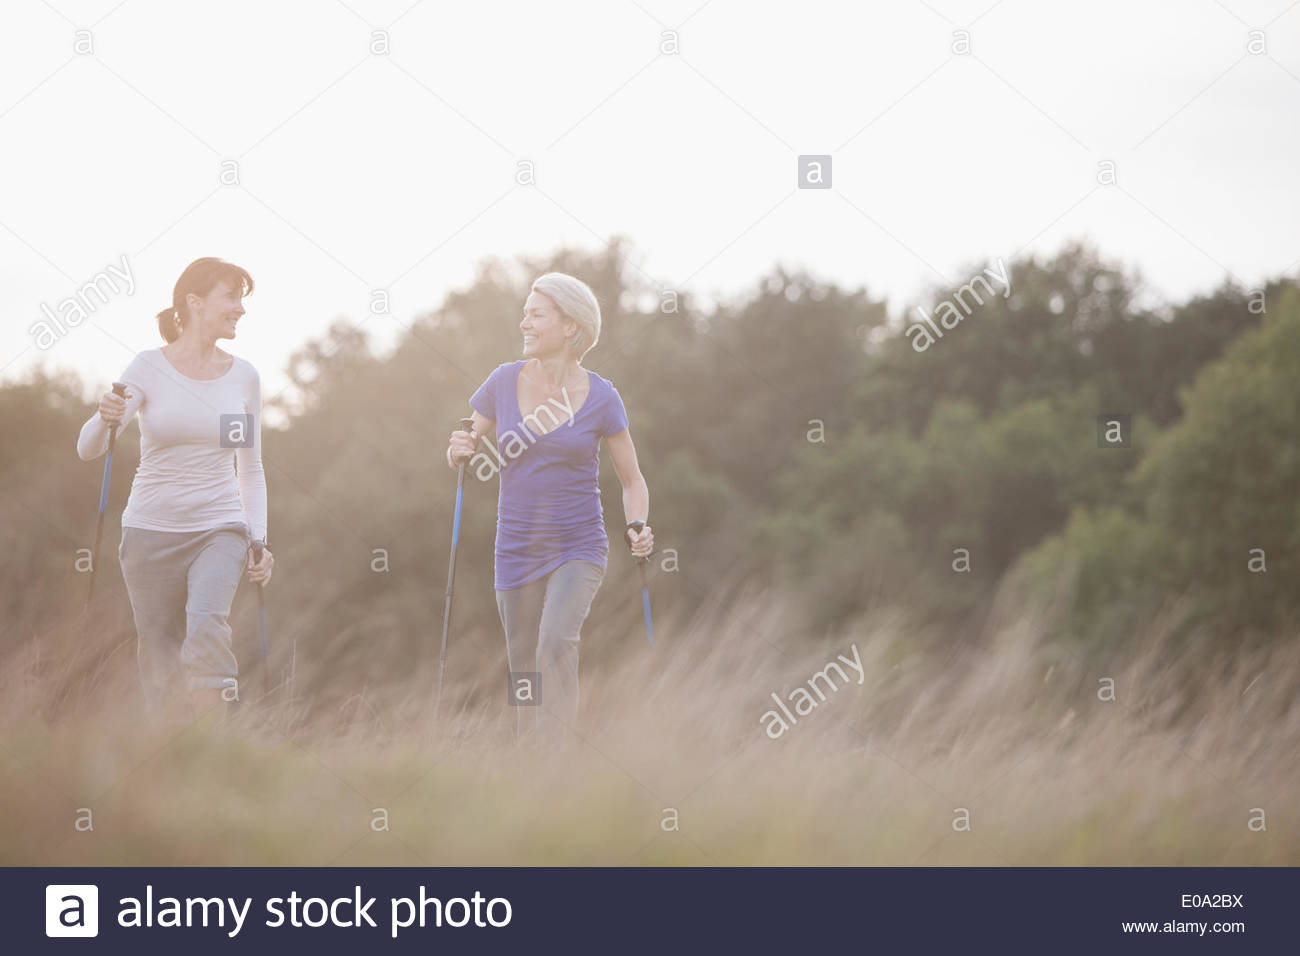 Happy women hiking together outdoors - Stock Image